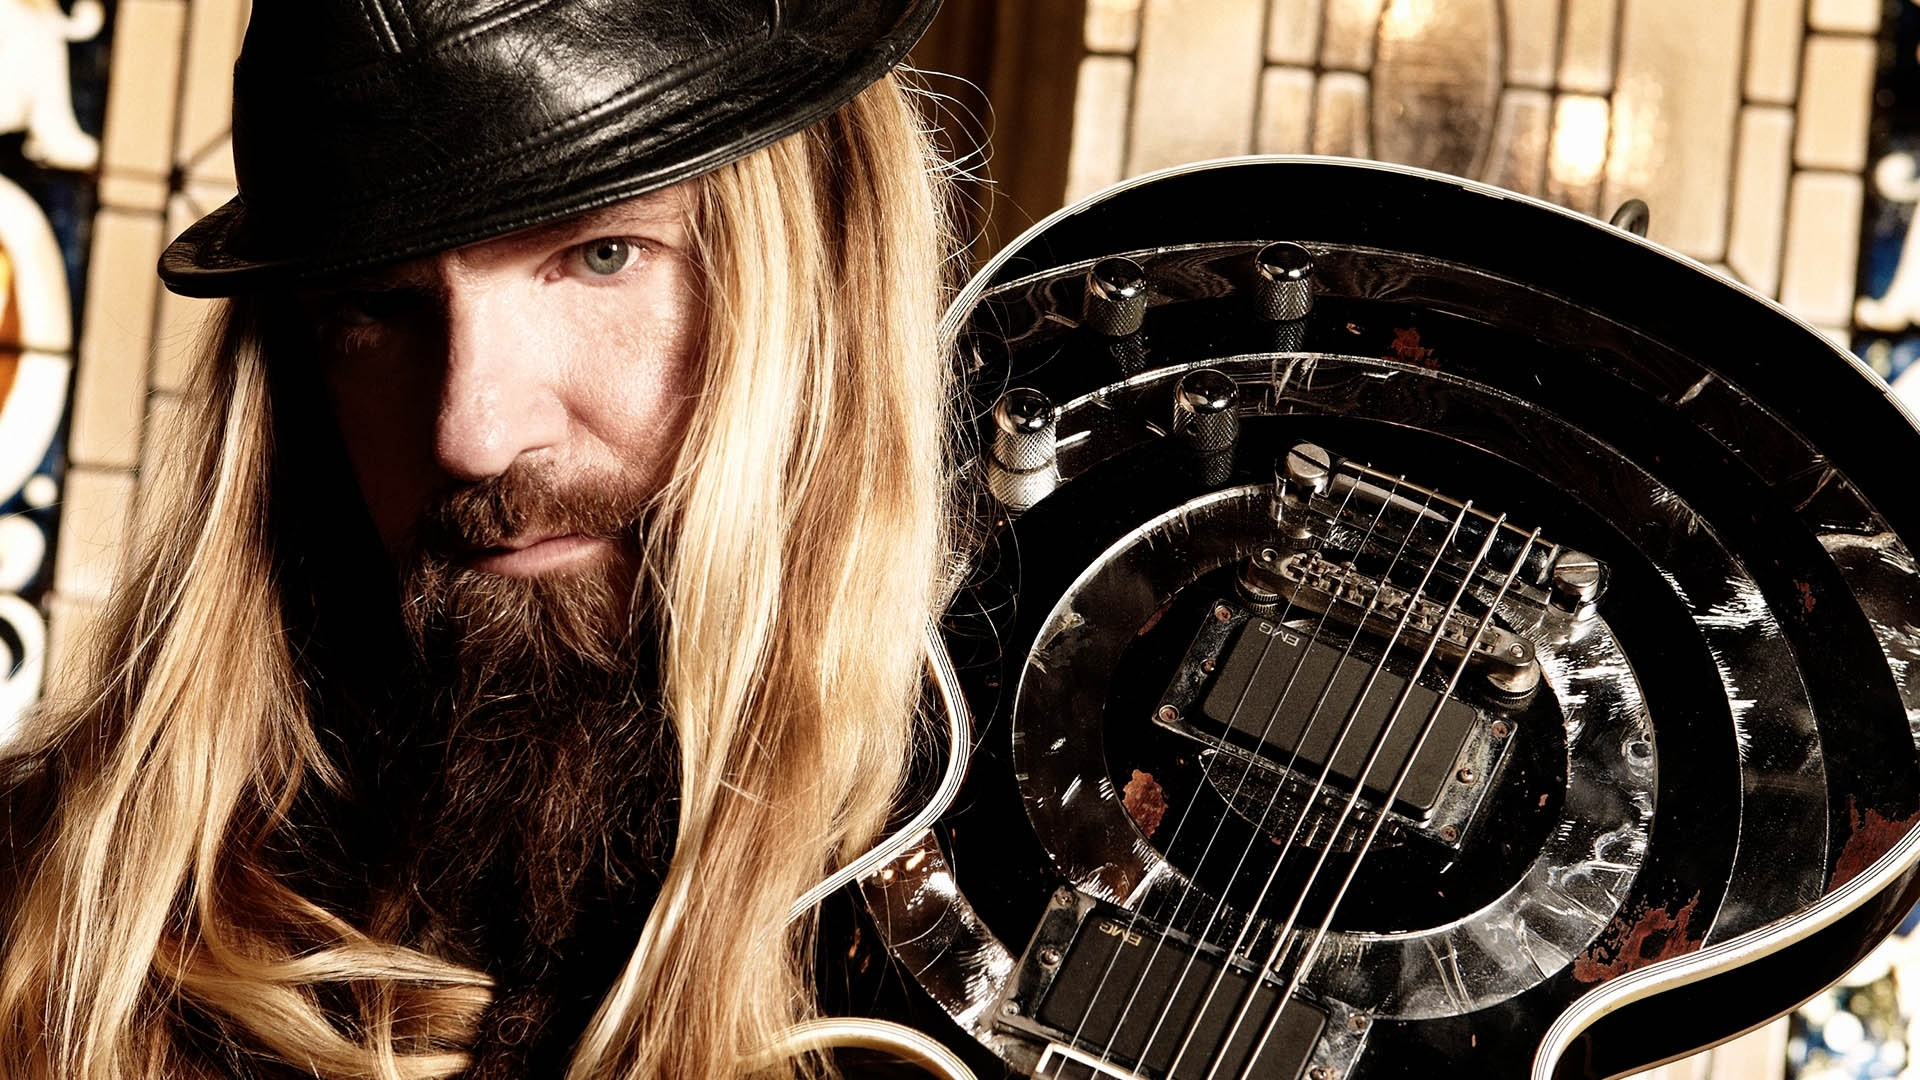 1920x1080  Wallpaper zakk wylde, guitar, hat, hair, beard